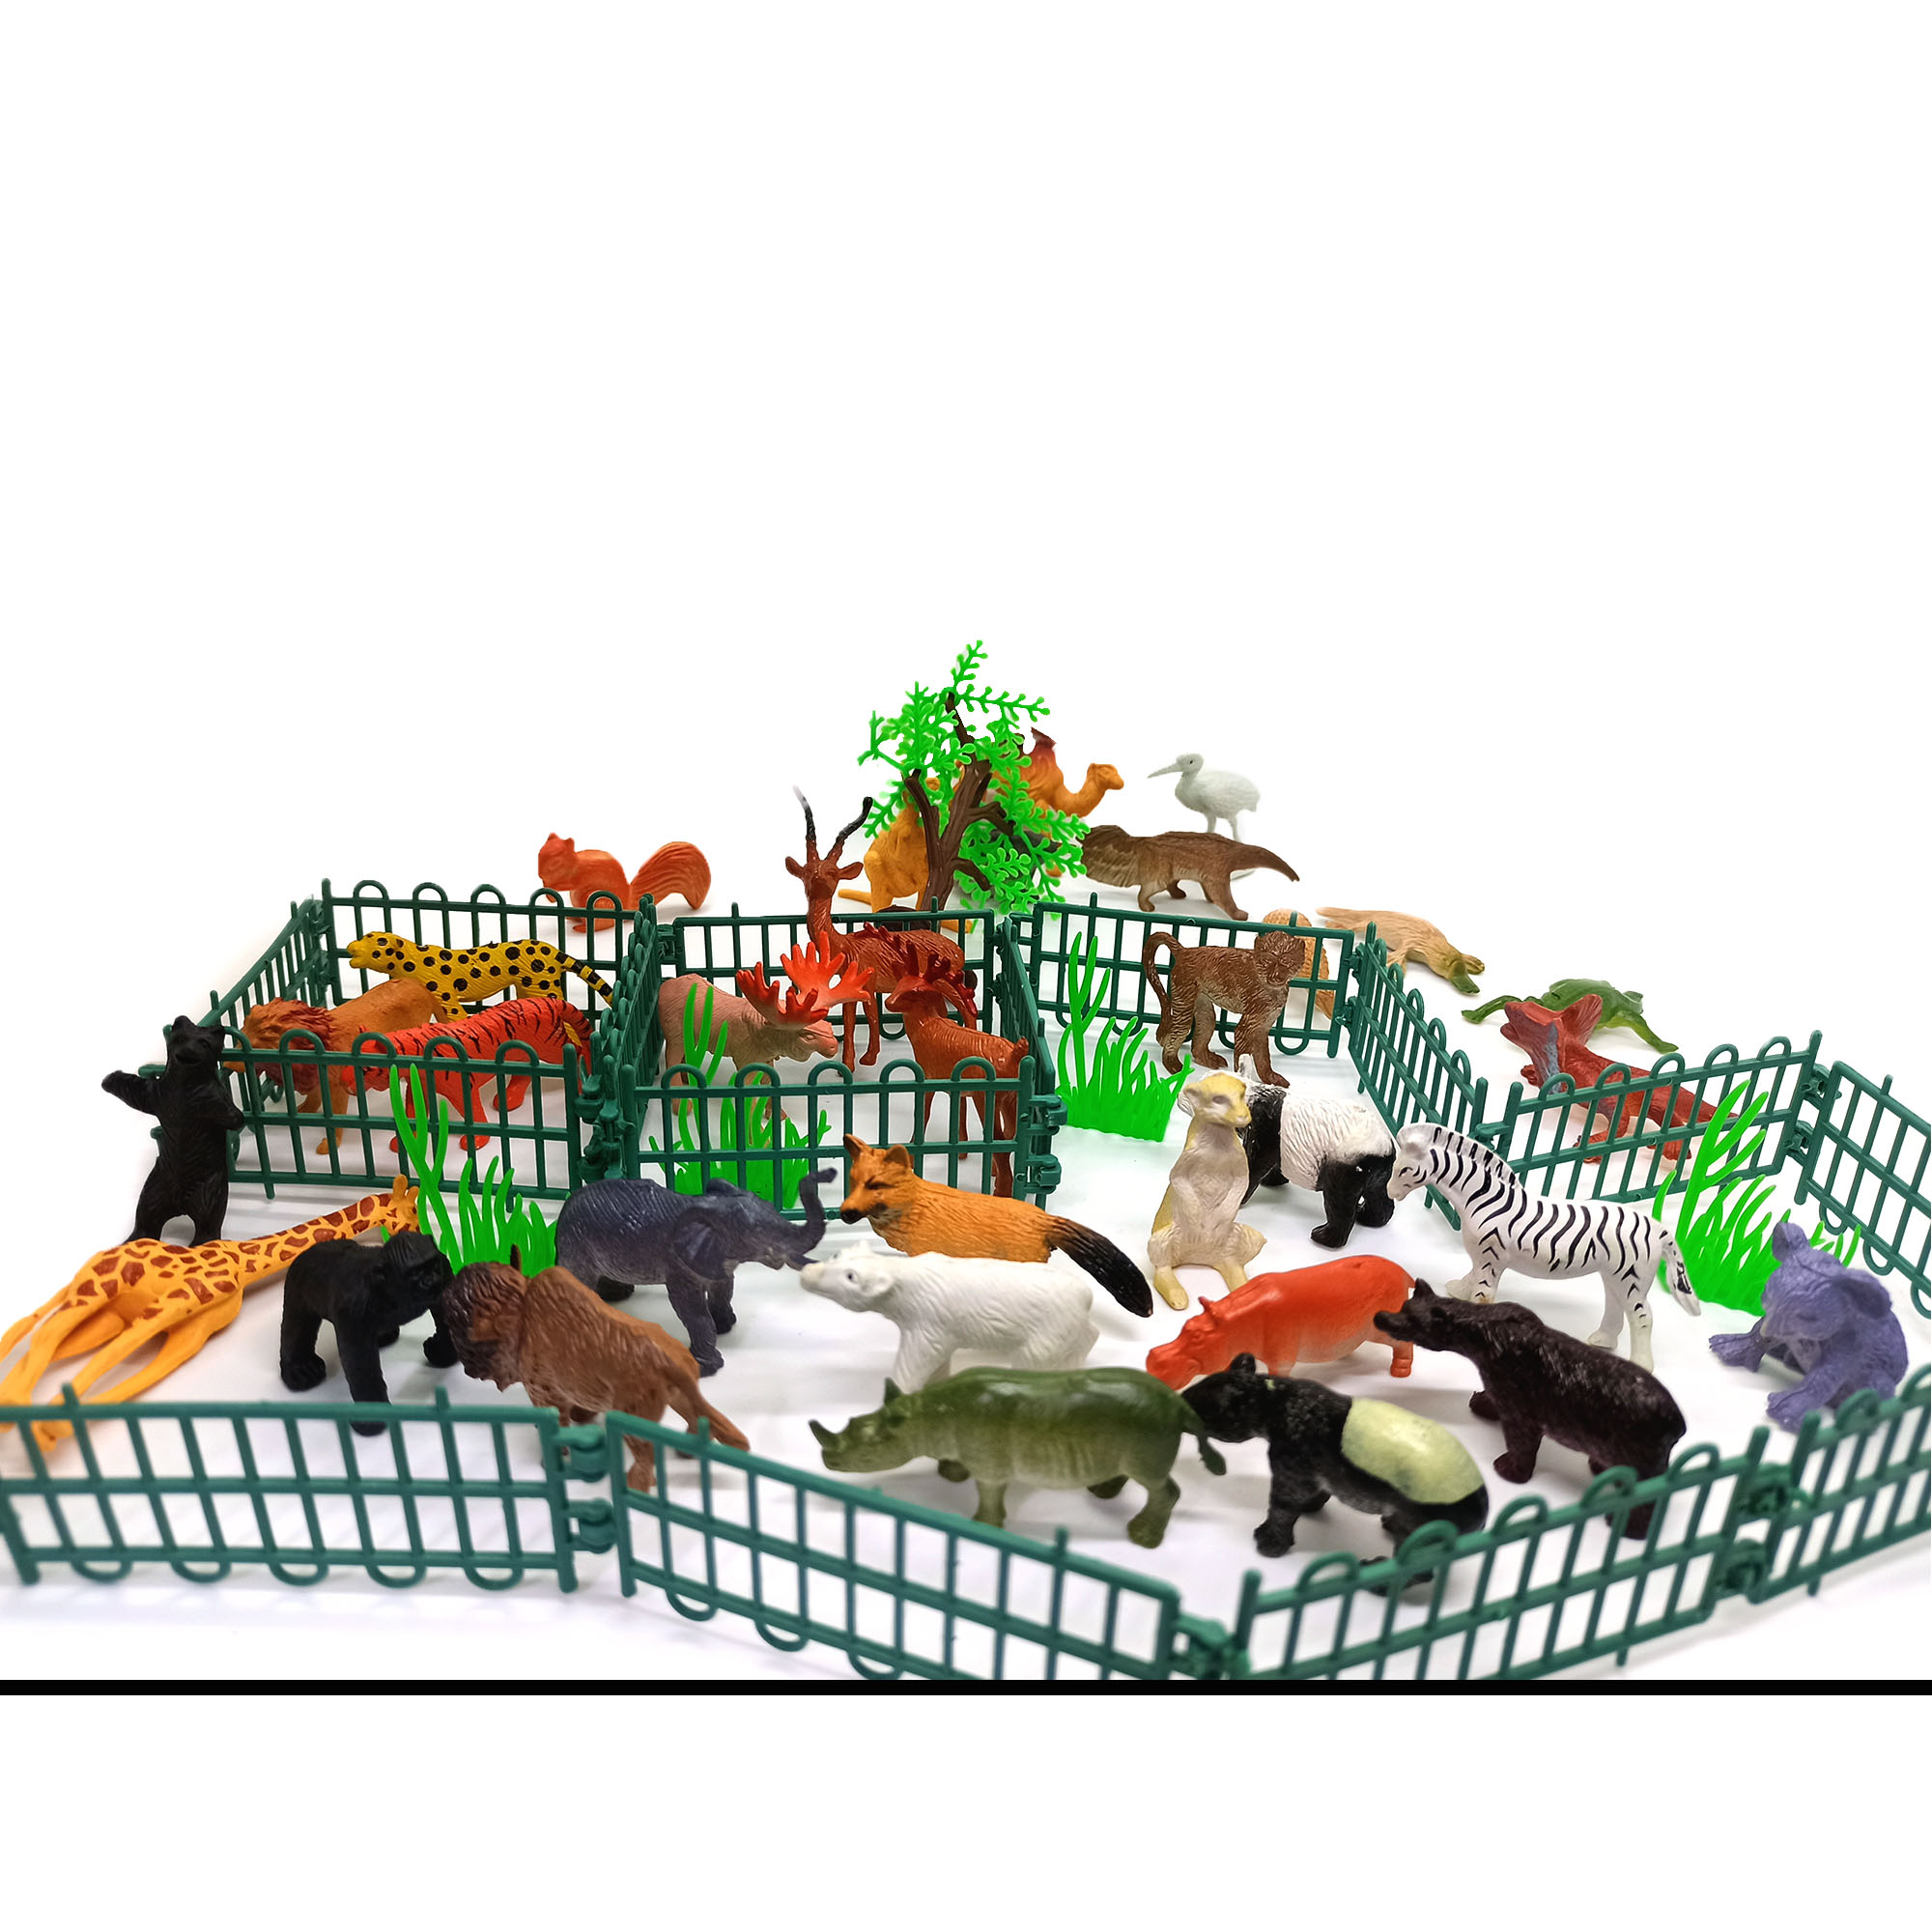 Mini Animal Zoo- Exclusive Animal Play Sets With More Than 25 Pcs Animal, Fence, Tree Etc. Learning Games For Boys Girls Kids Toddlers